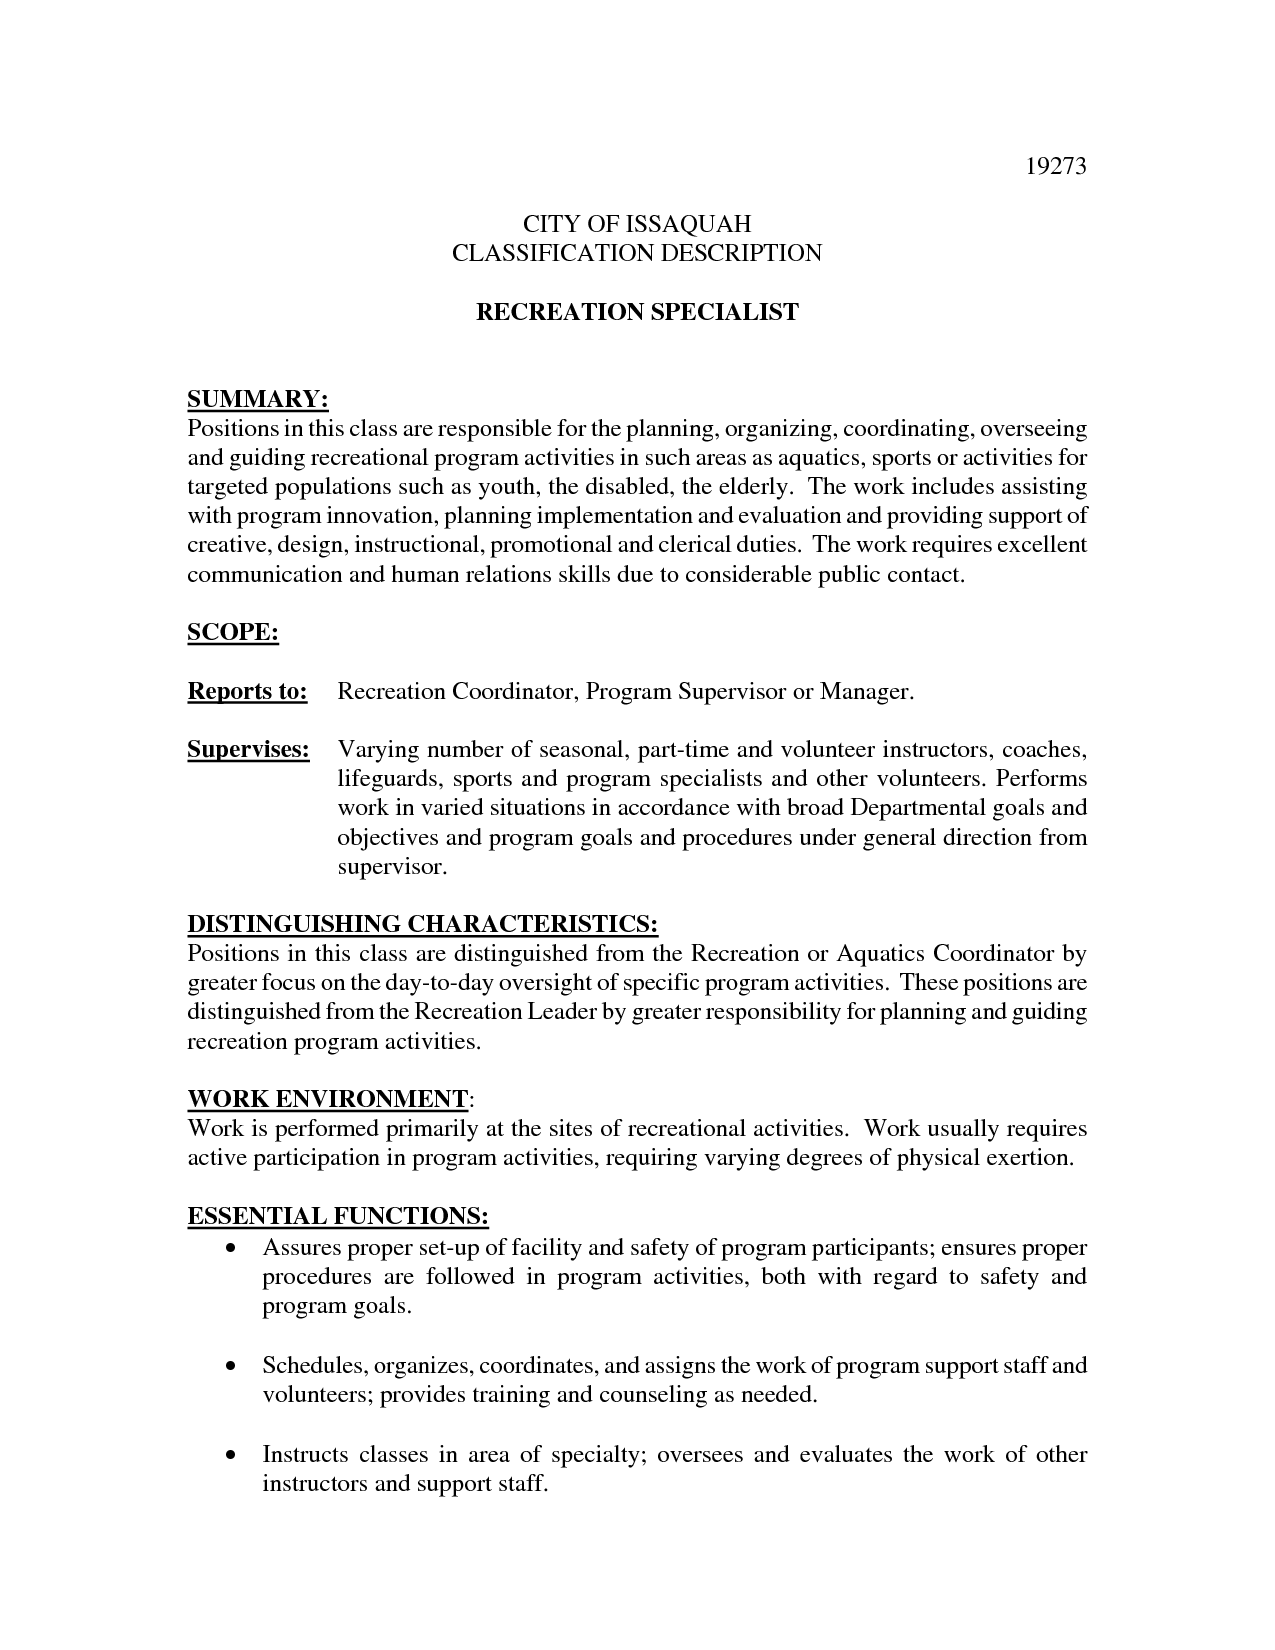 Communications Specialist Resume  Resume Template